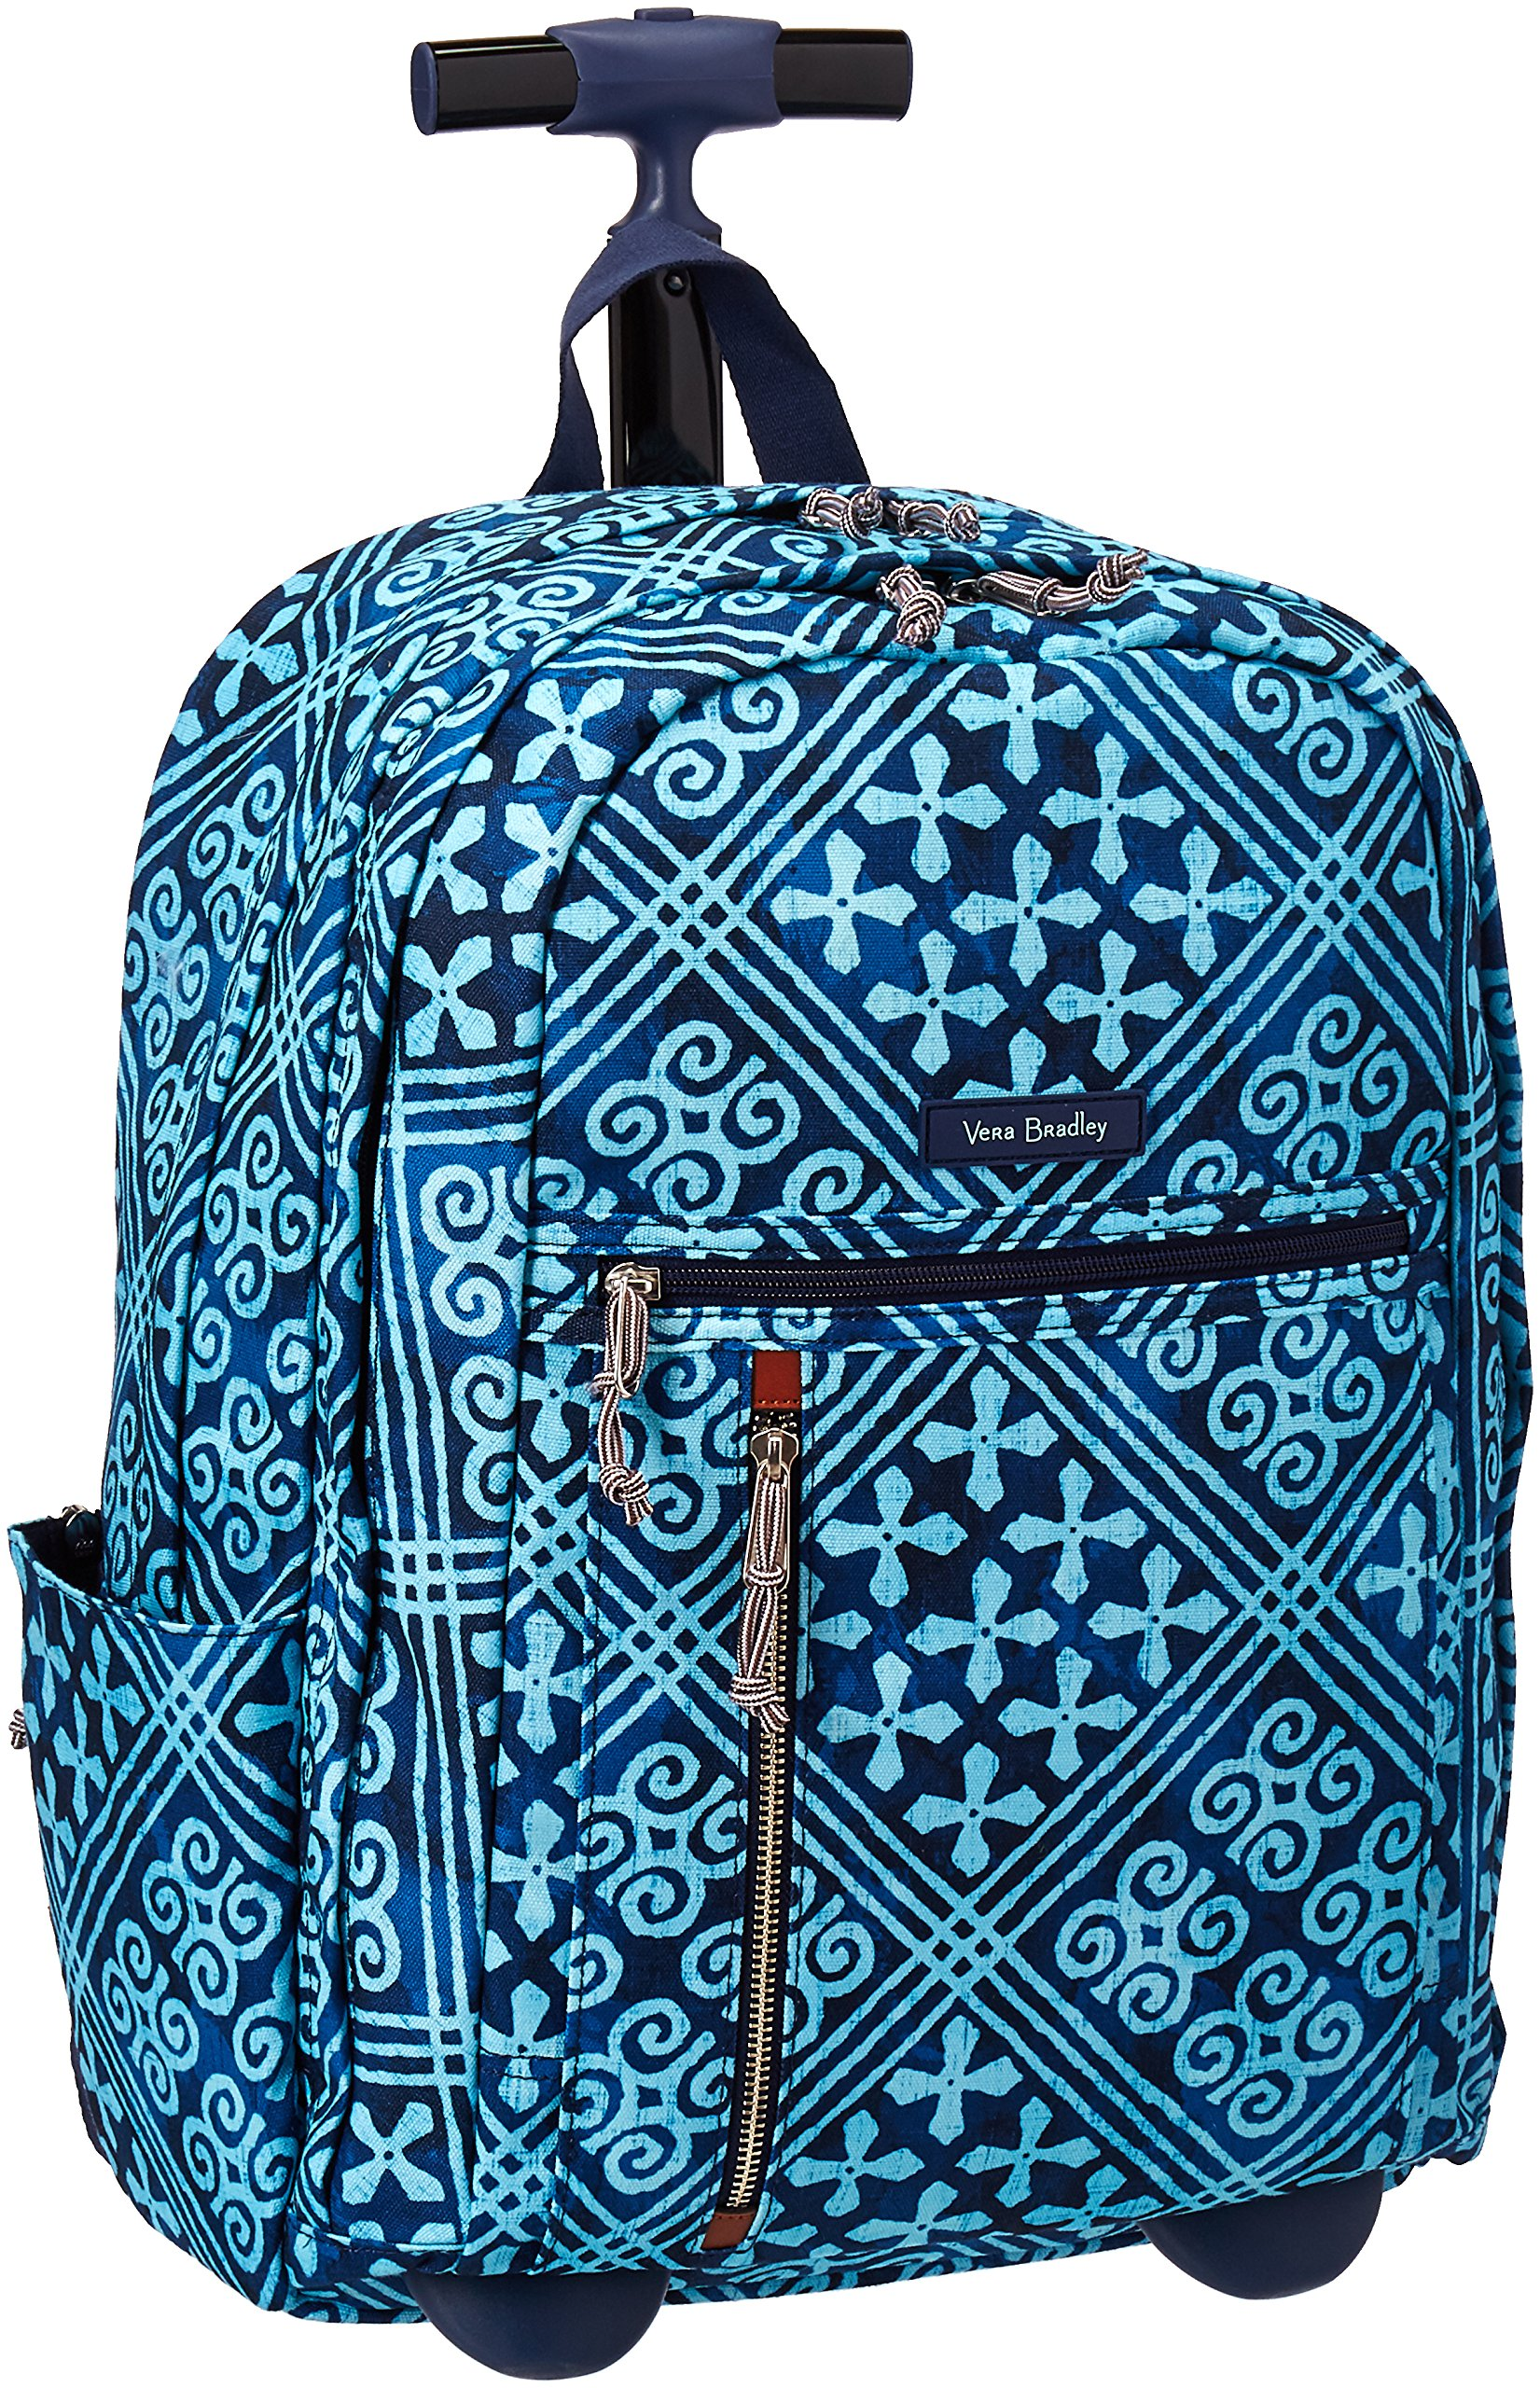 Vera Bradley Women's Rolling Backpack, Cuban Tiles by Vera Bradley